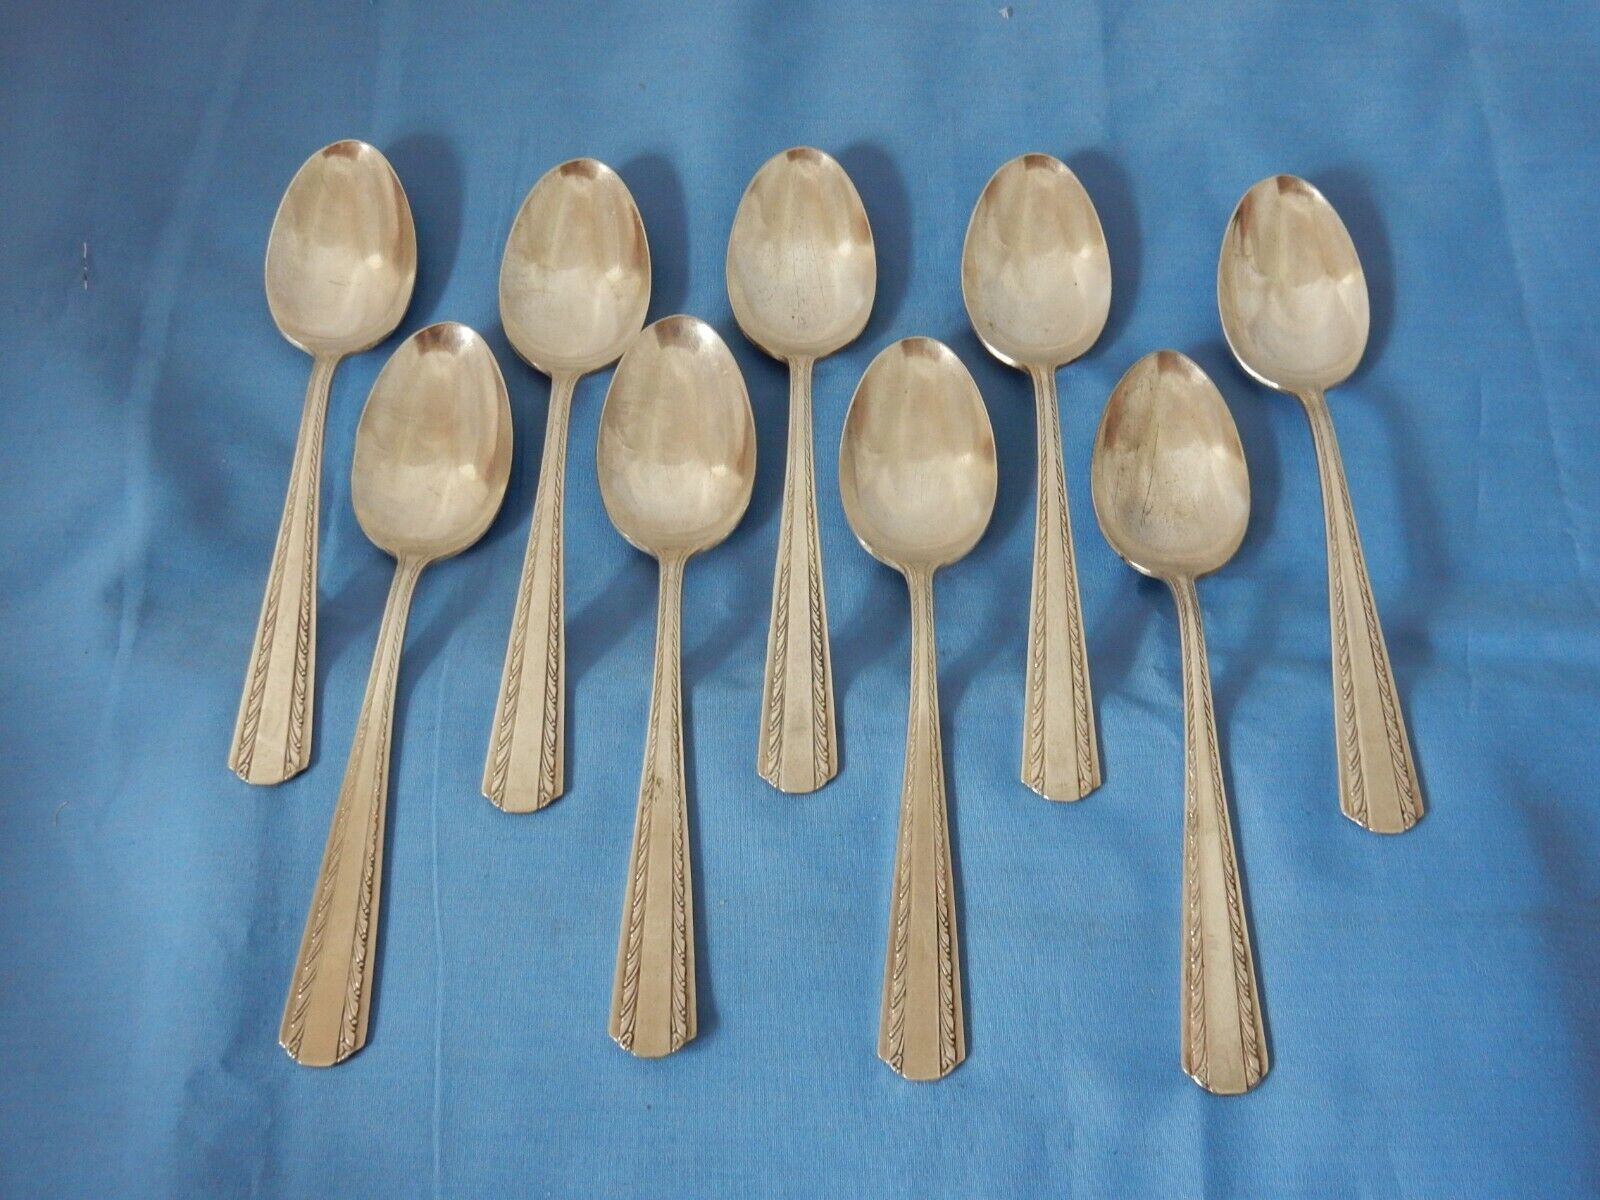 American Silver IS Silverplate Camelot Harvest 1964 Oval Place Soup Spoons - 9 - $7.99